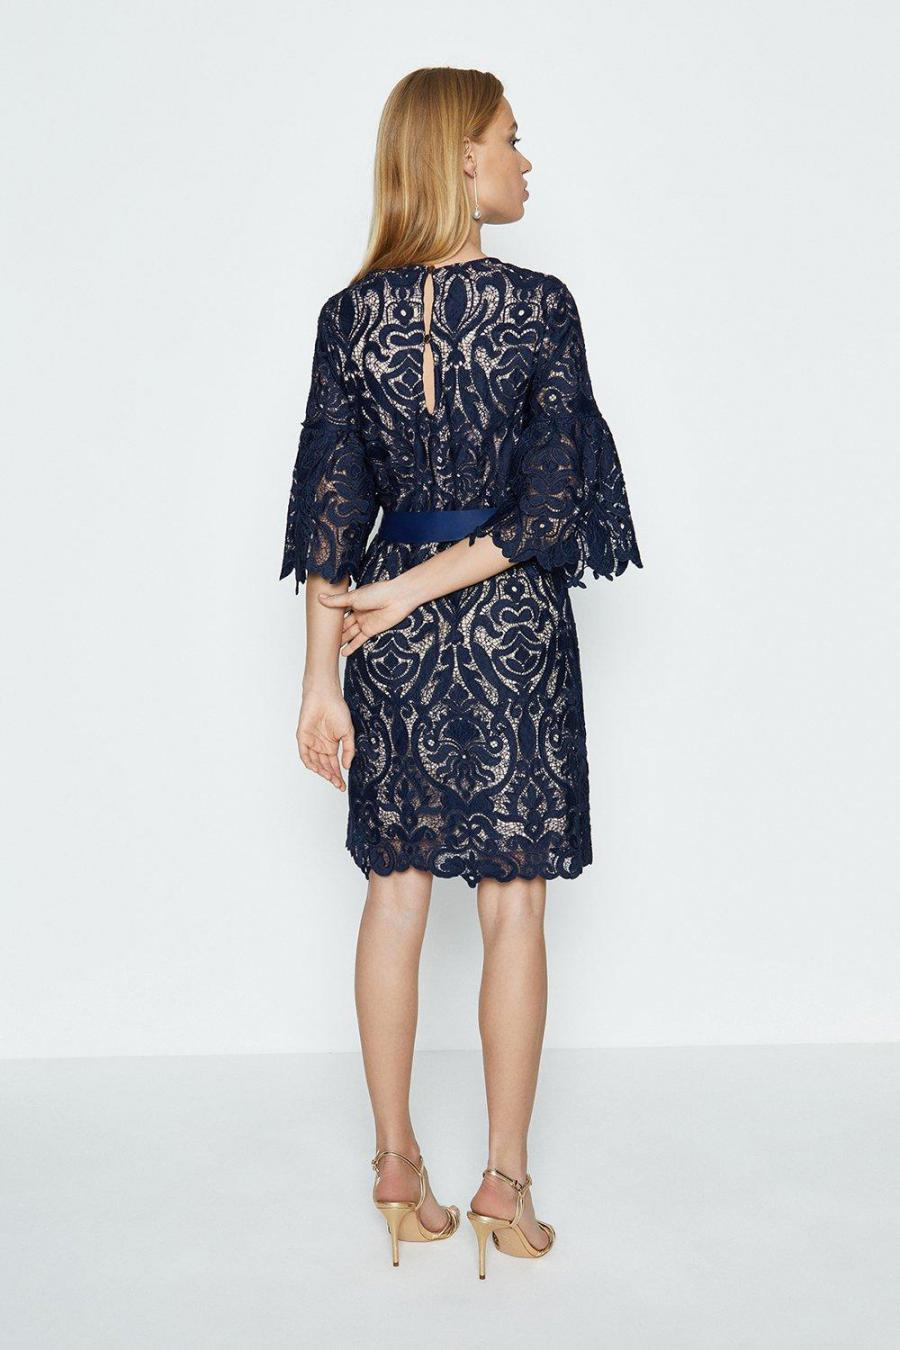 Coast A Line Dresses | Womens Lace Puff Sleeve Knee Length Dress Navy